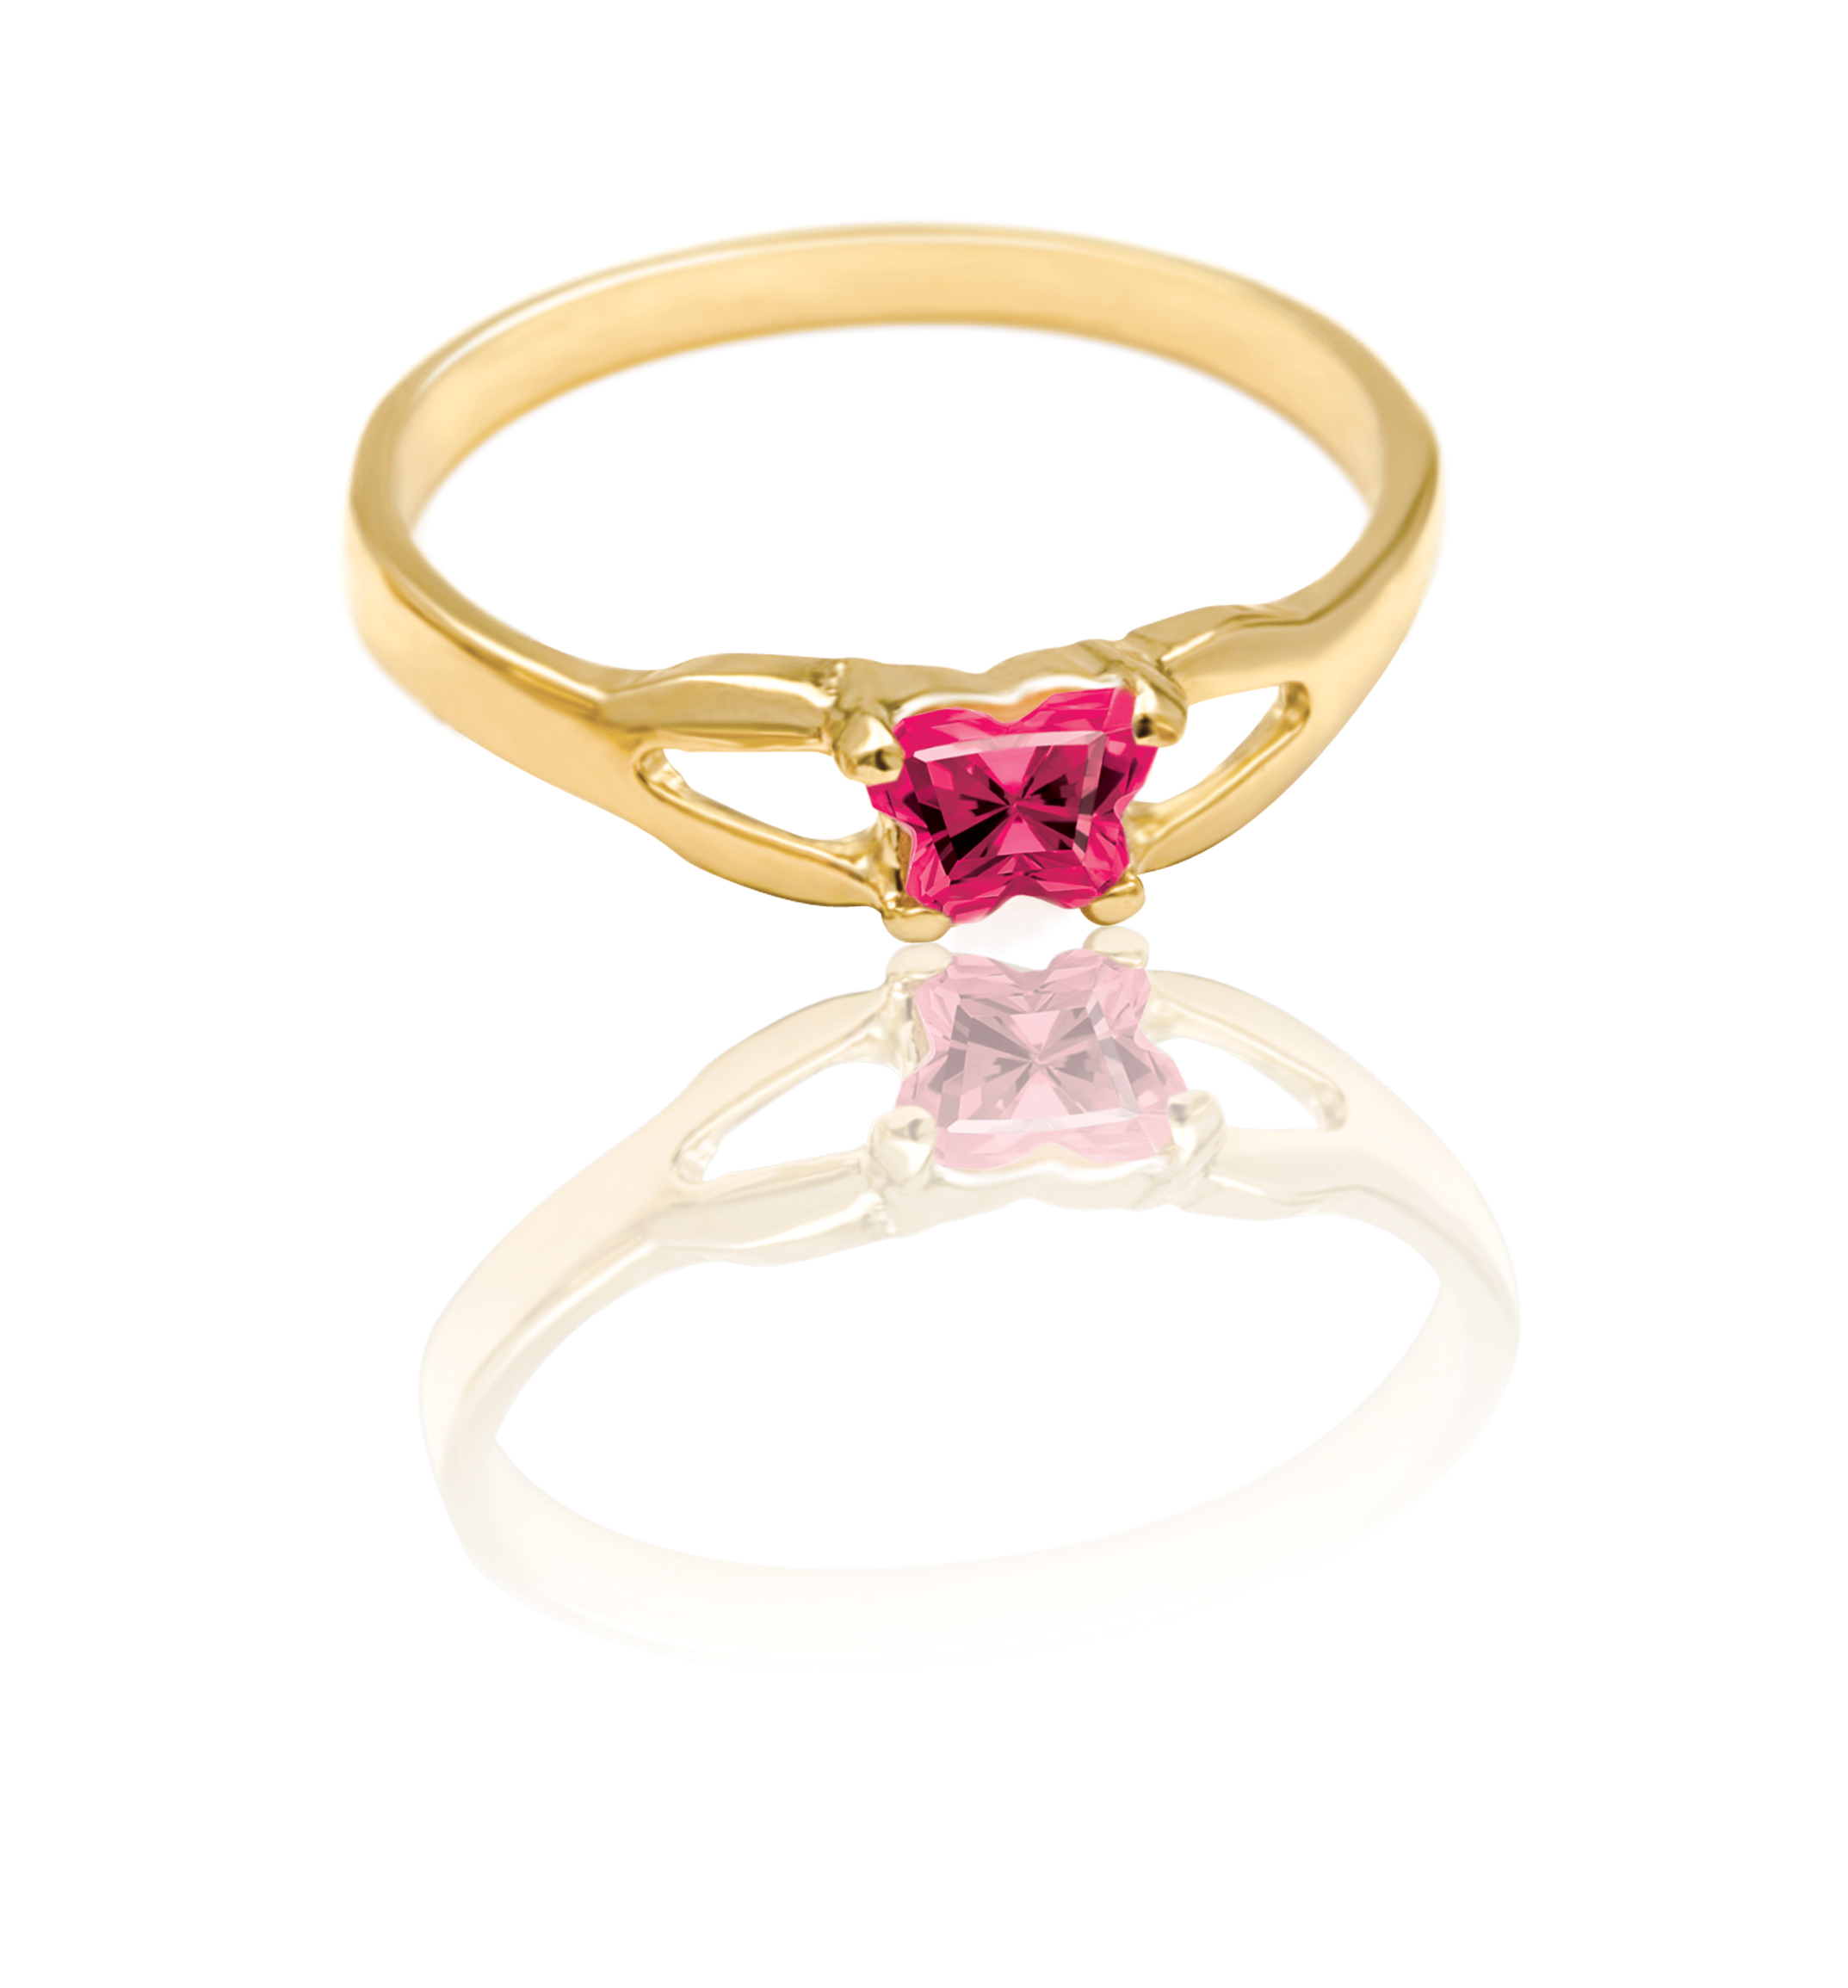 ring for child - 10K yellow Gold & Pinkish-red cubic zirconia (month of July)*